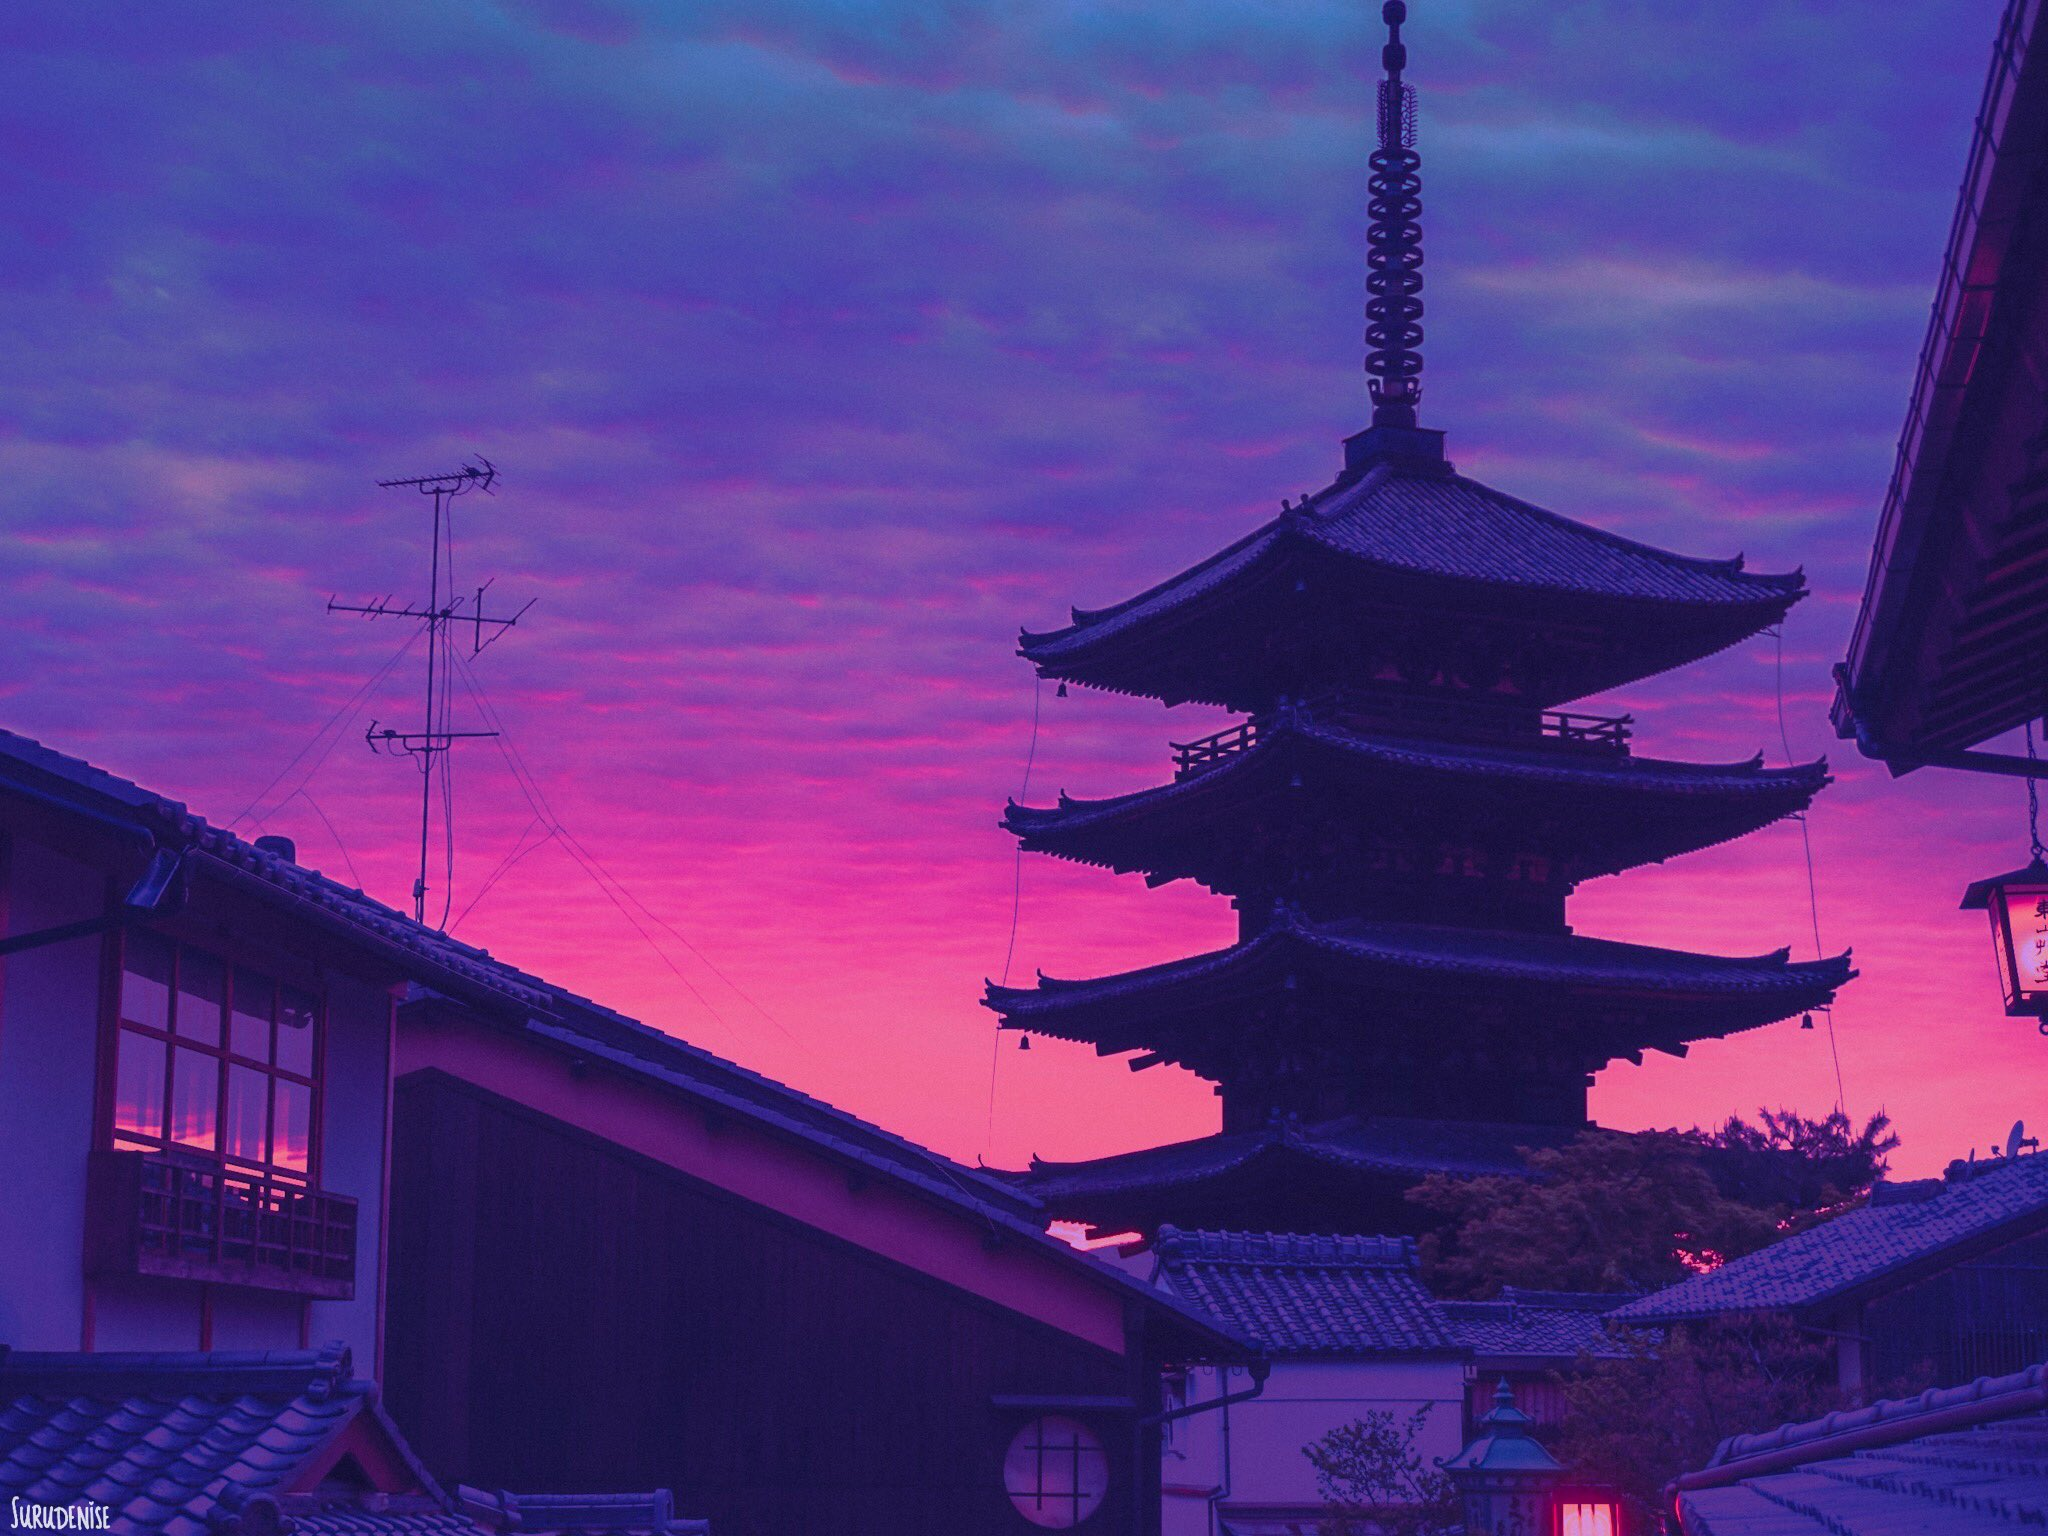 Sunset in Kyoto https://t.co/Mixqaruynz